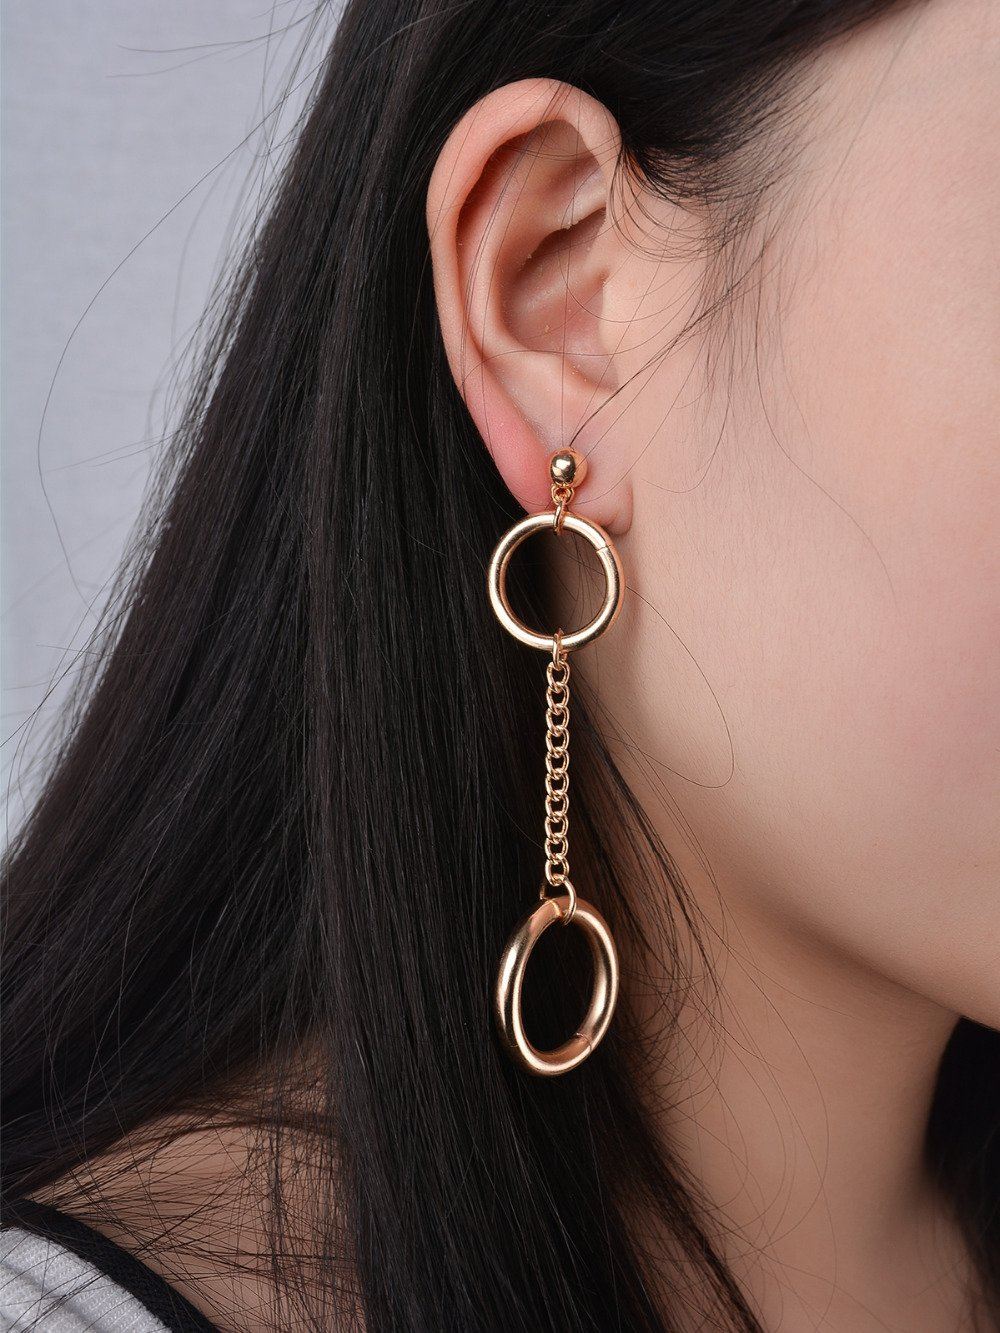 Vintage Bohemia Double Round Dangle Drop Earrings Two Colors Alloy Link Chain Ears Jewelry for Women - Urunigi.com